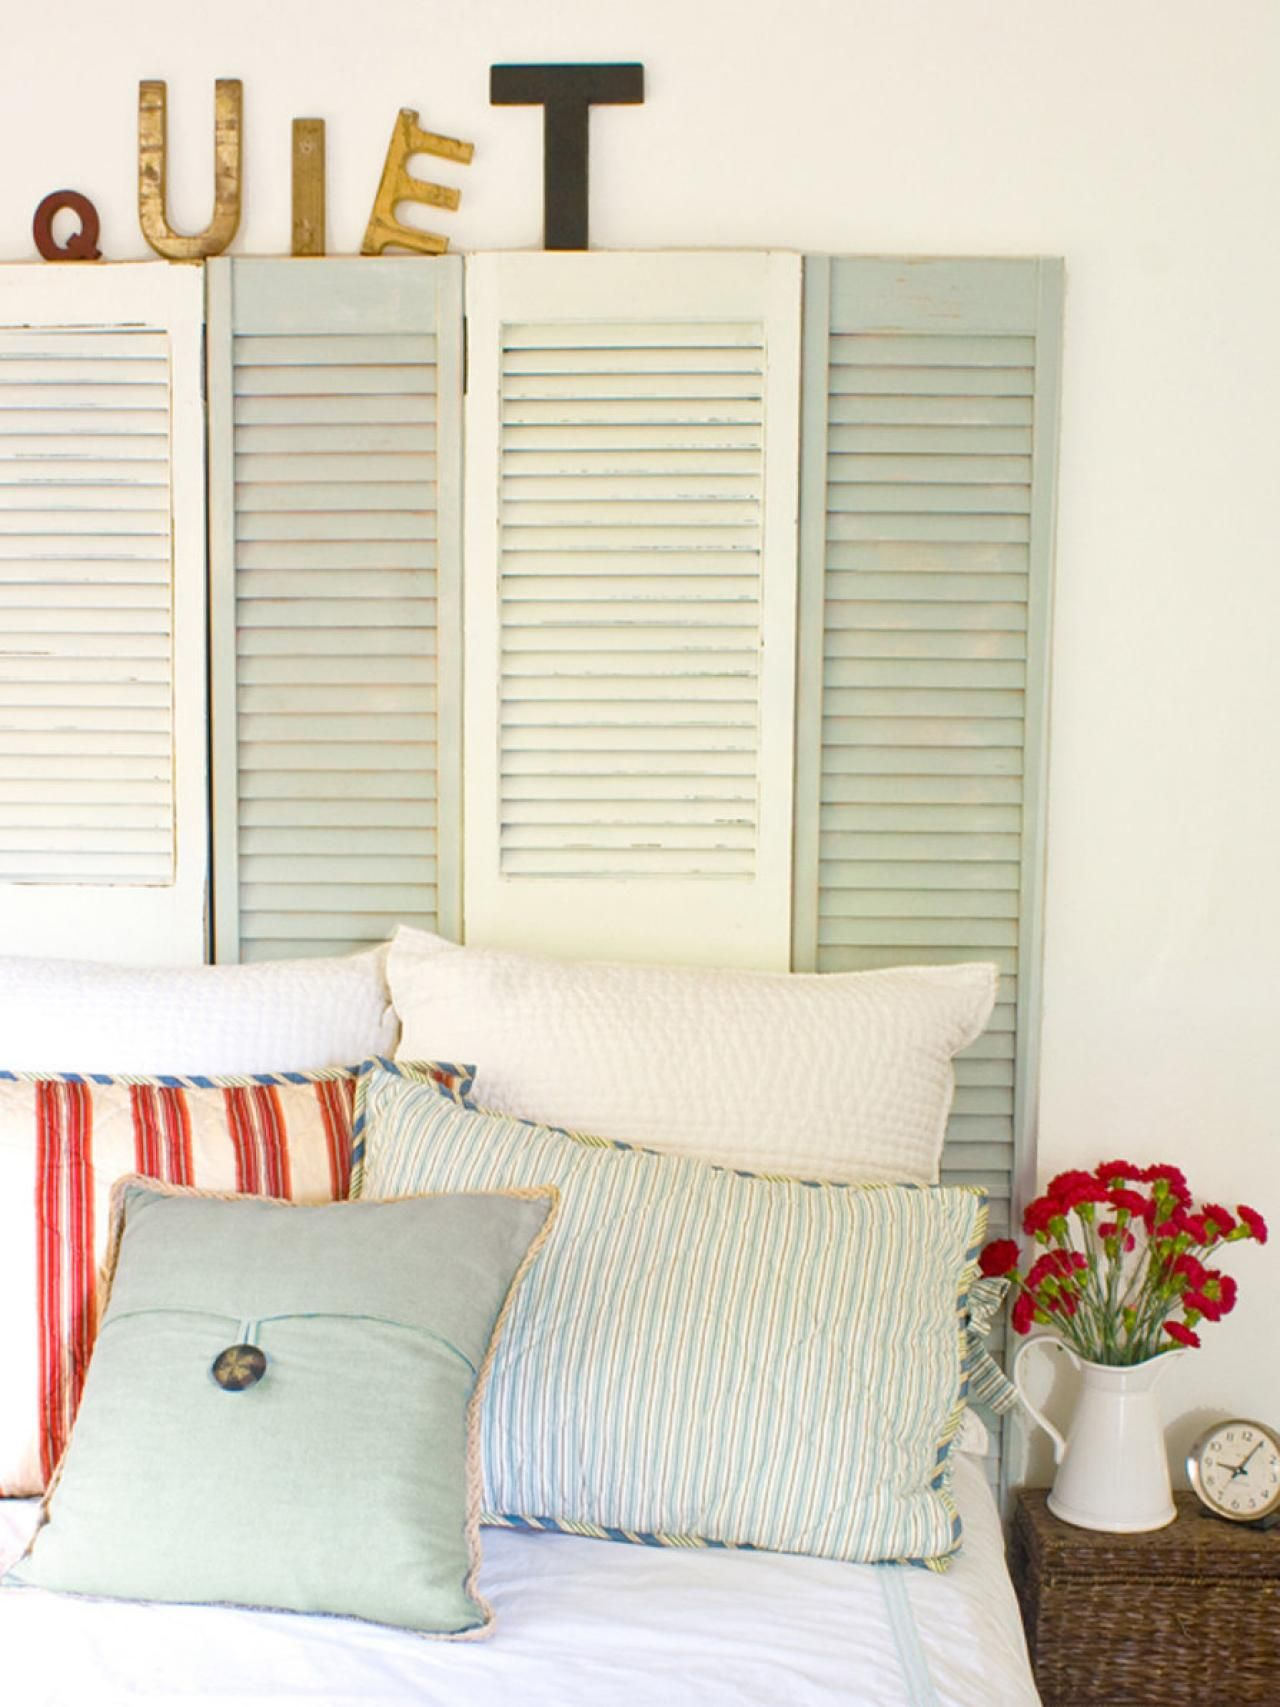 Diy Circuit Board Table Decor Nifty Ideas Crafty Crafts Pin 36 Ways To Repurpose Window Shutters Into Something Better View In Gallery